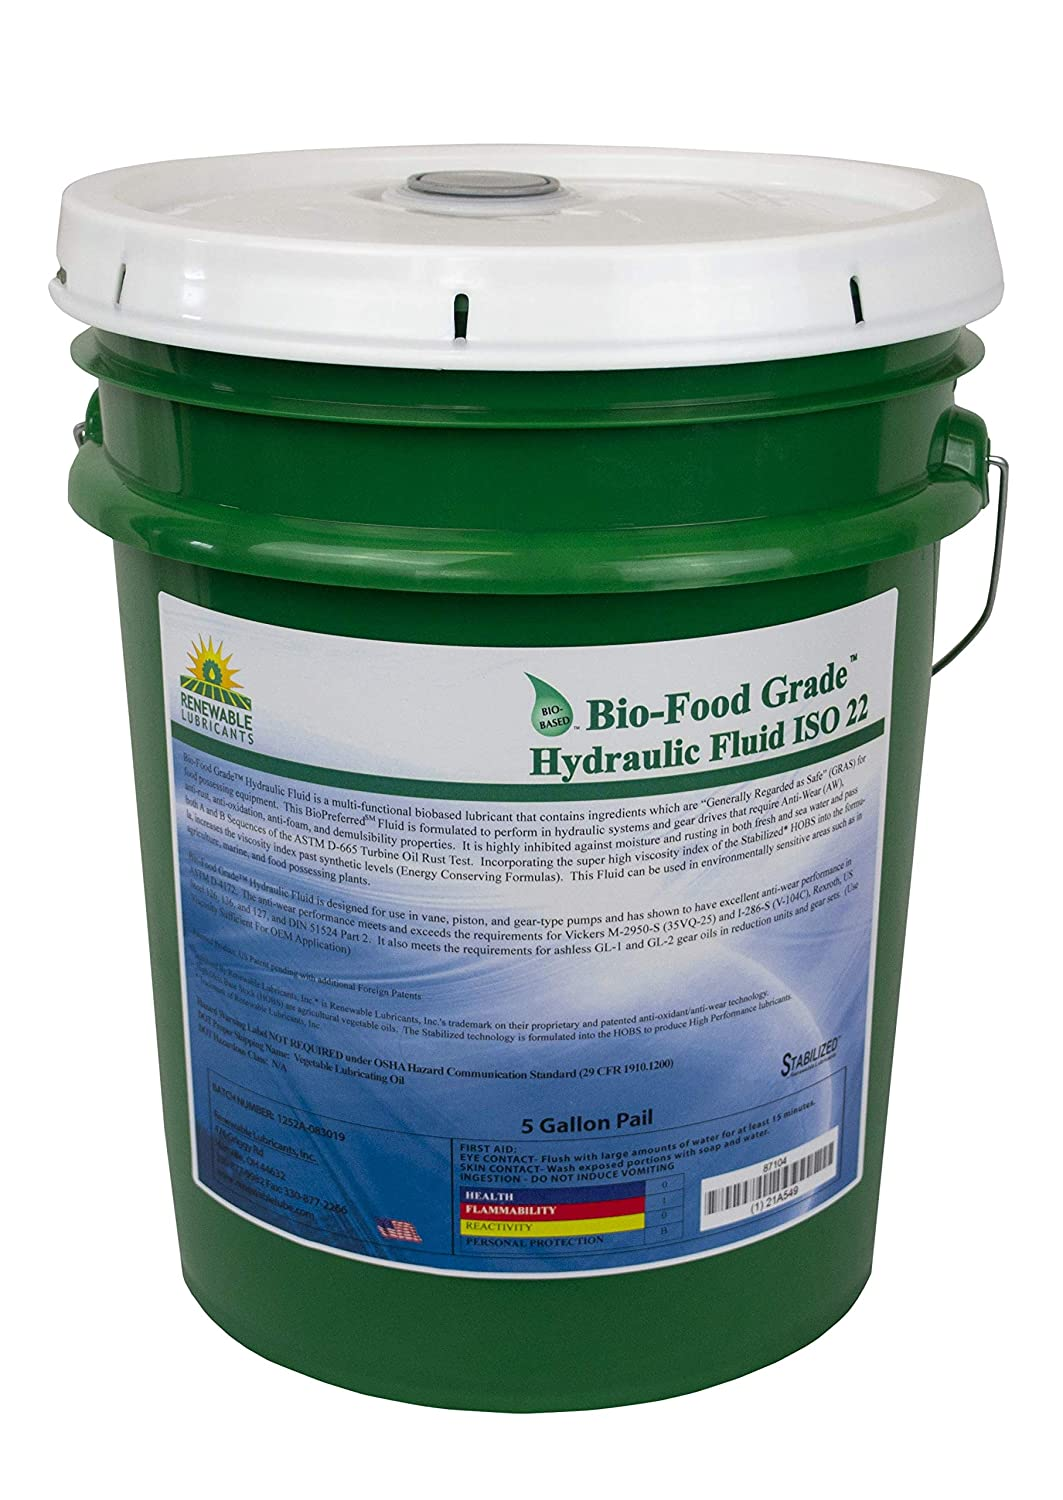 Renewable Lubricants Bio-Food Grade ISO 22 Hydraulic Fluid, 5 Gallon Pail